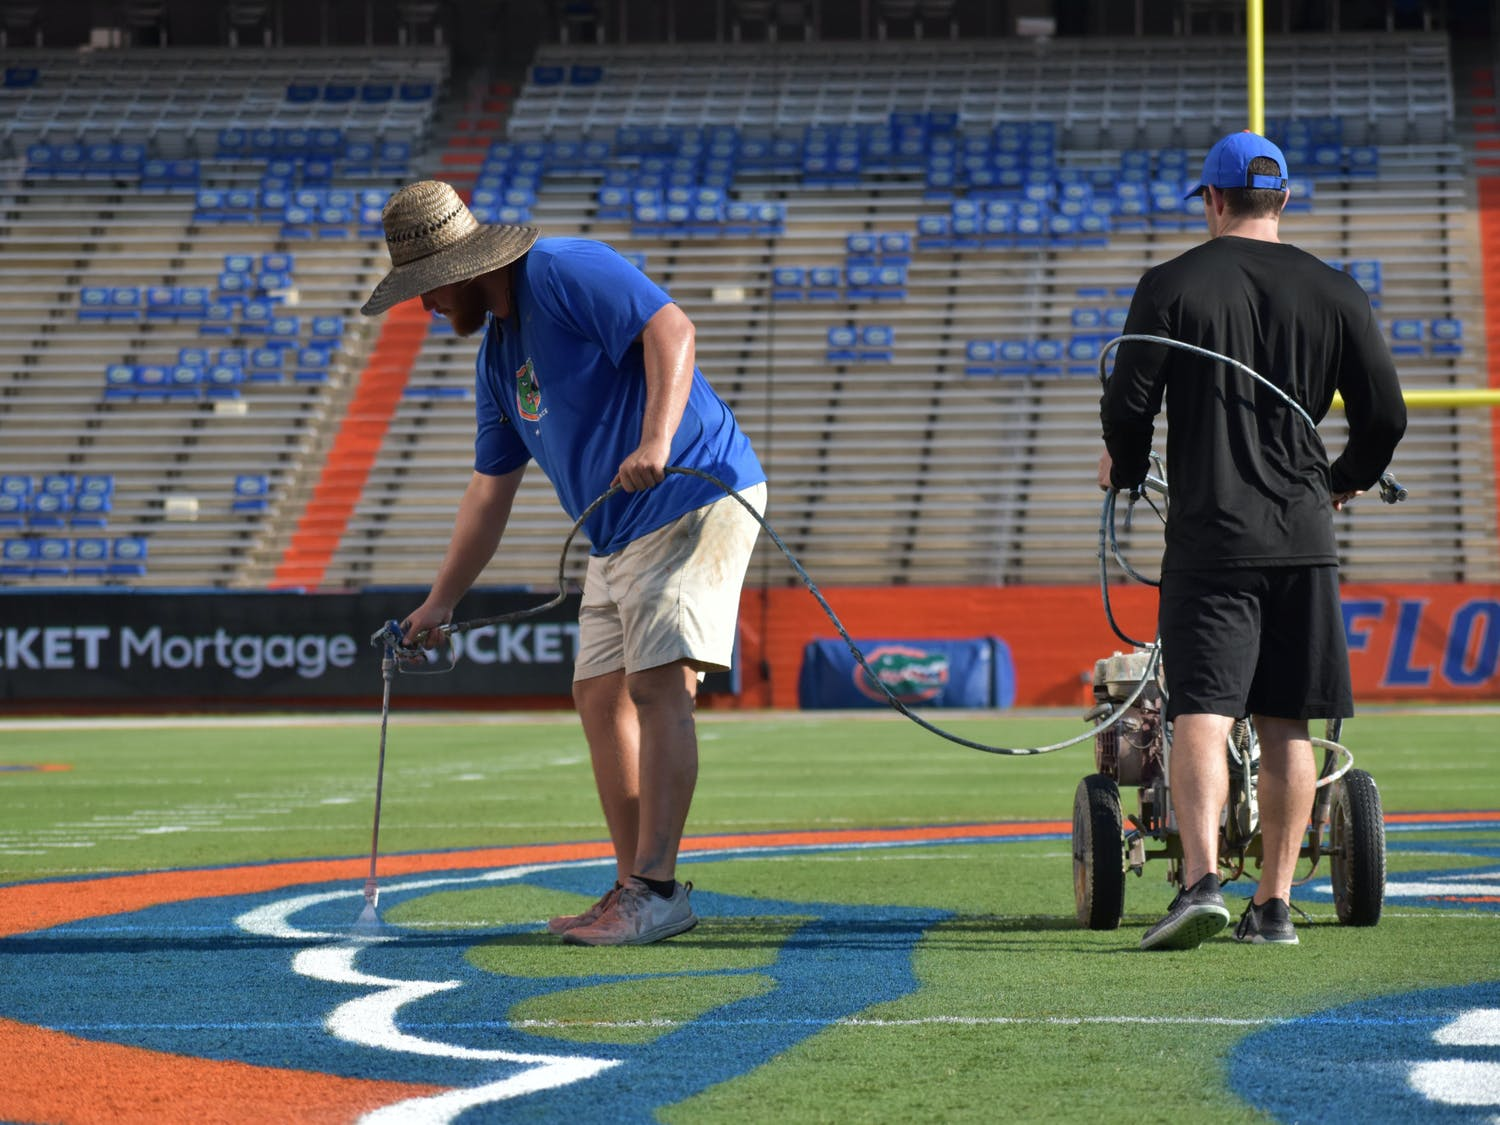 Field maintenance staff add the final touches to the Steve Spurrier-Florida Field in preparation for game day on Friday, Sept. 3, 2021.